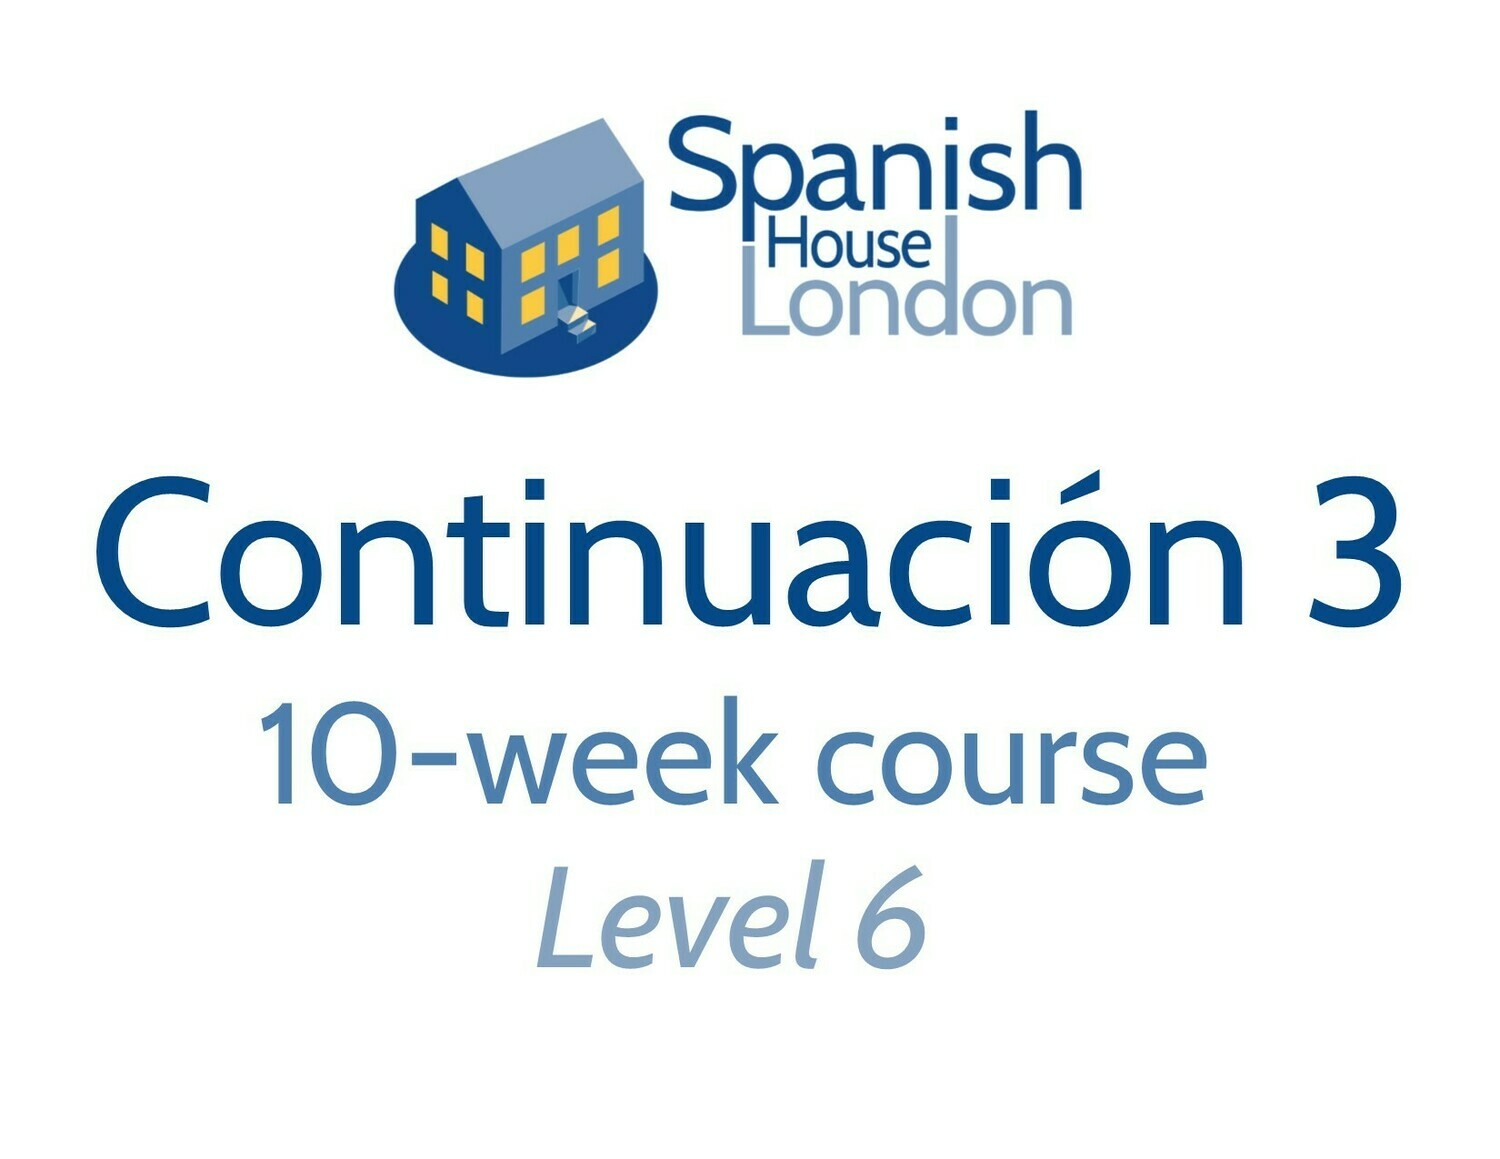 Continuacion 3 Course starting on 12th November at 7.30pm